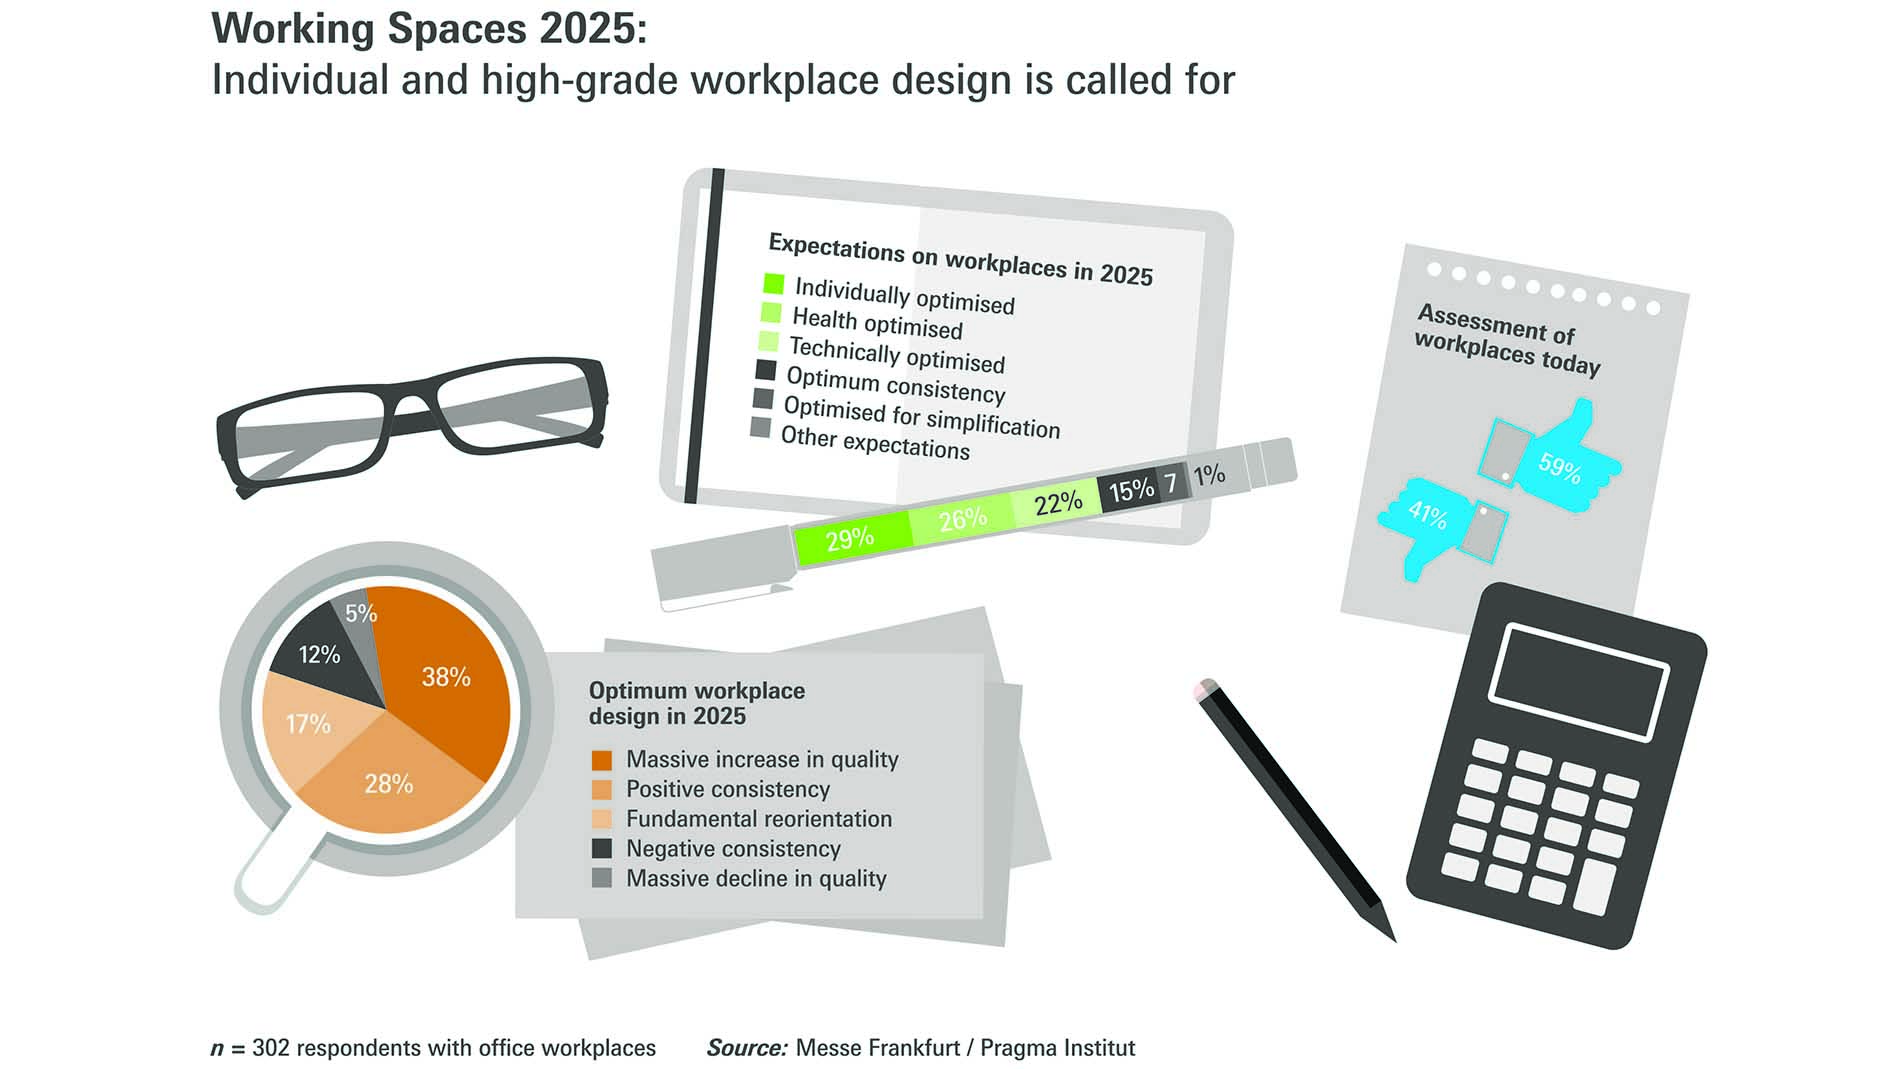 Working Spaces 2025